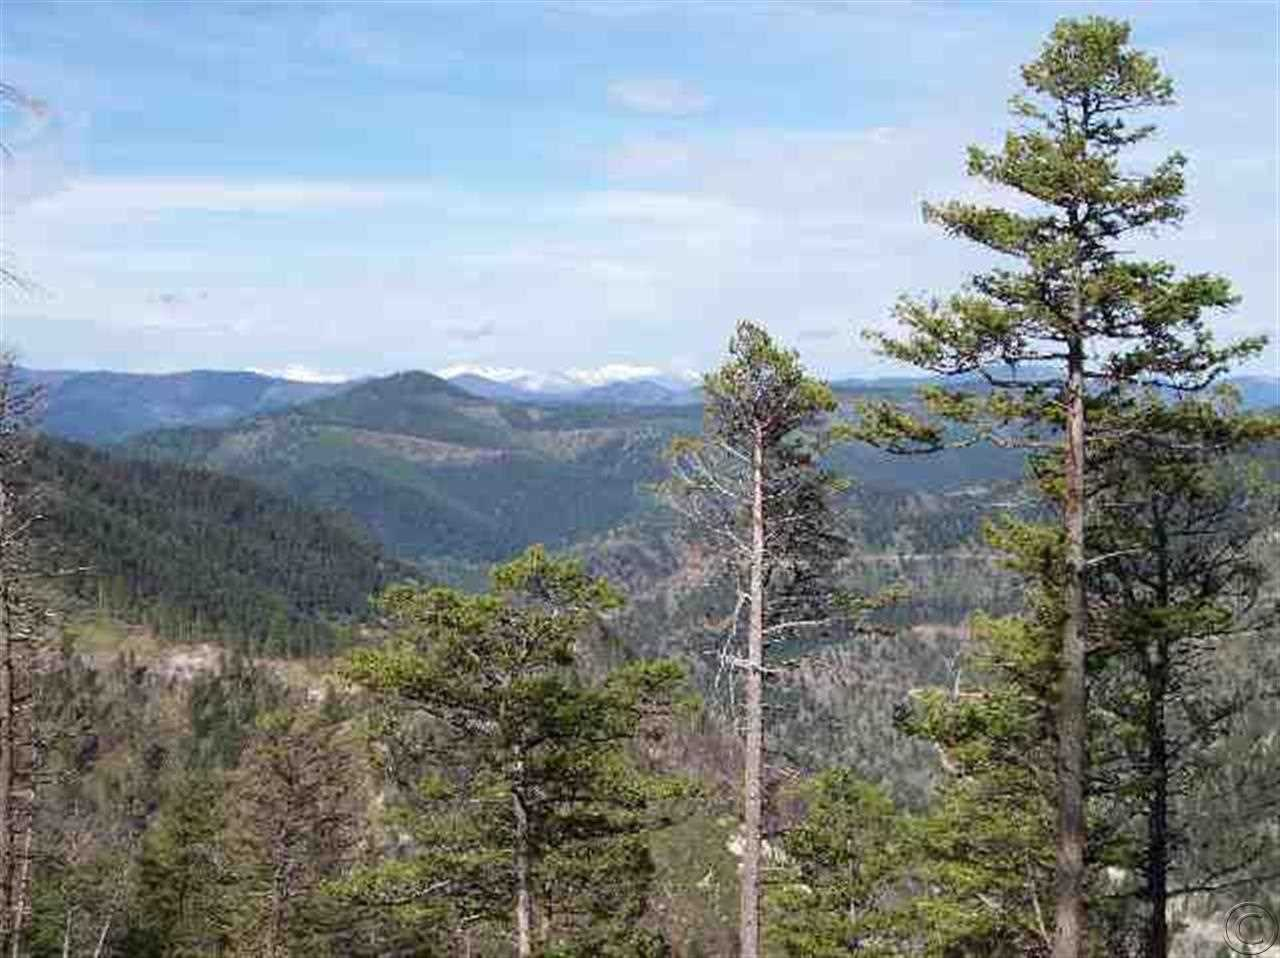 428.88 acres in Clinton, Montana